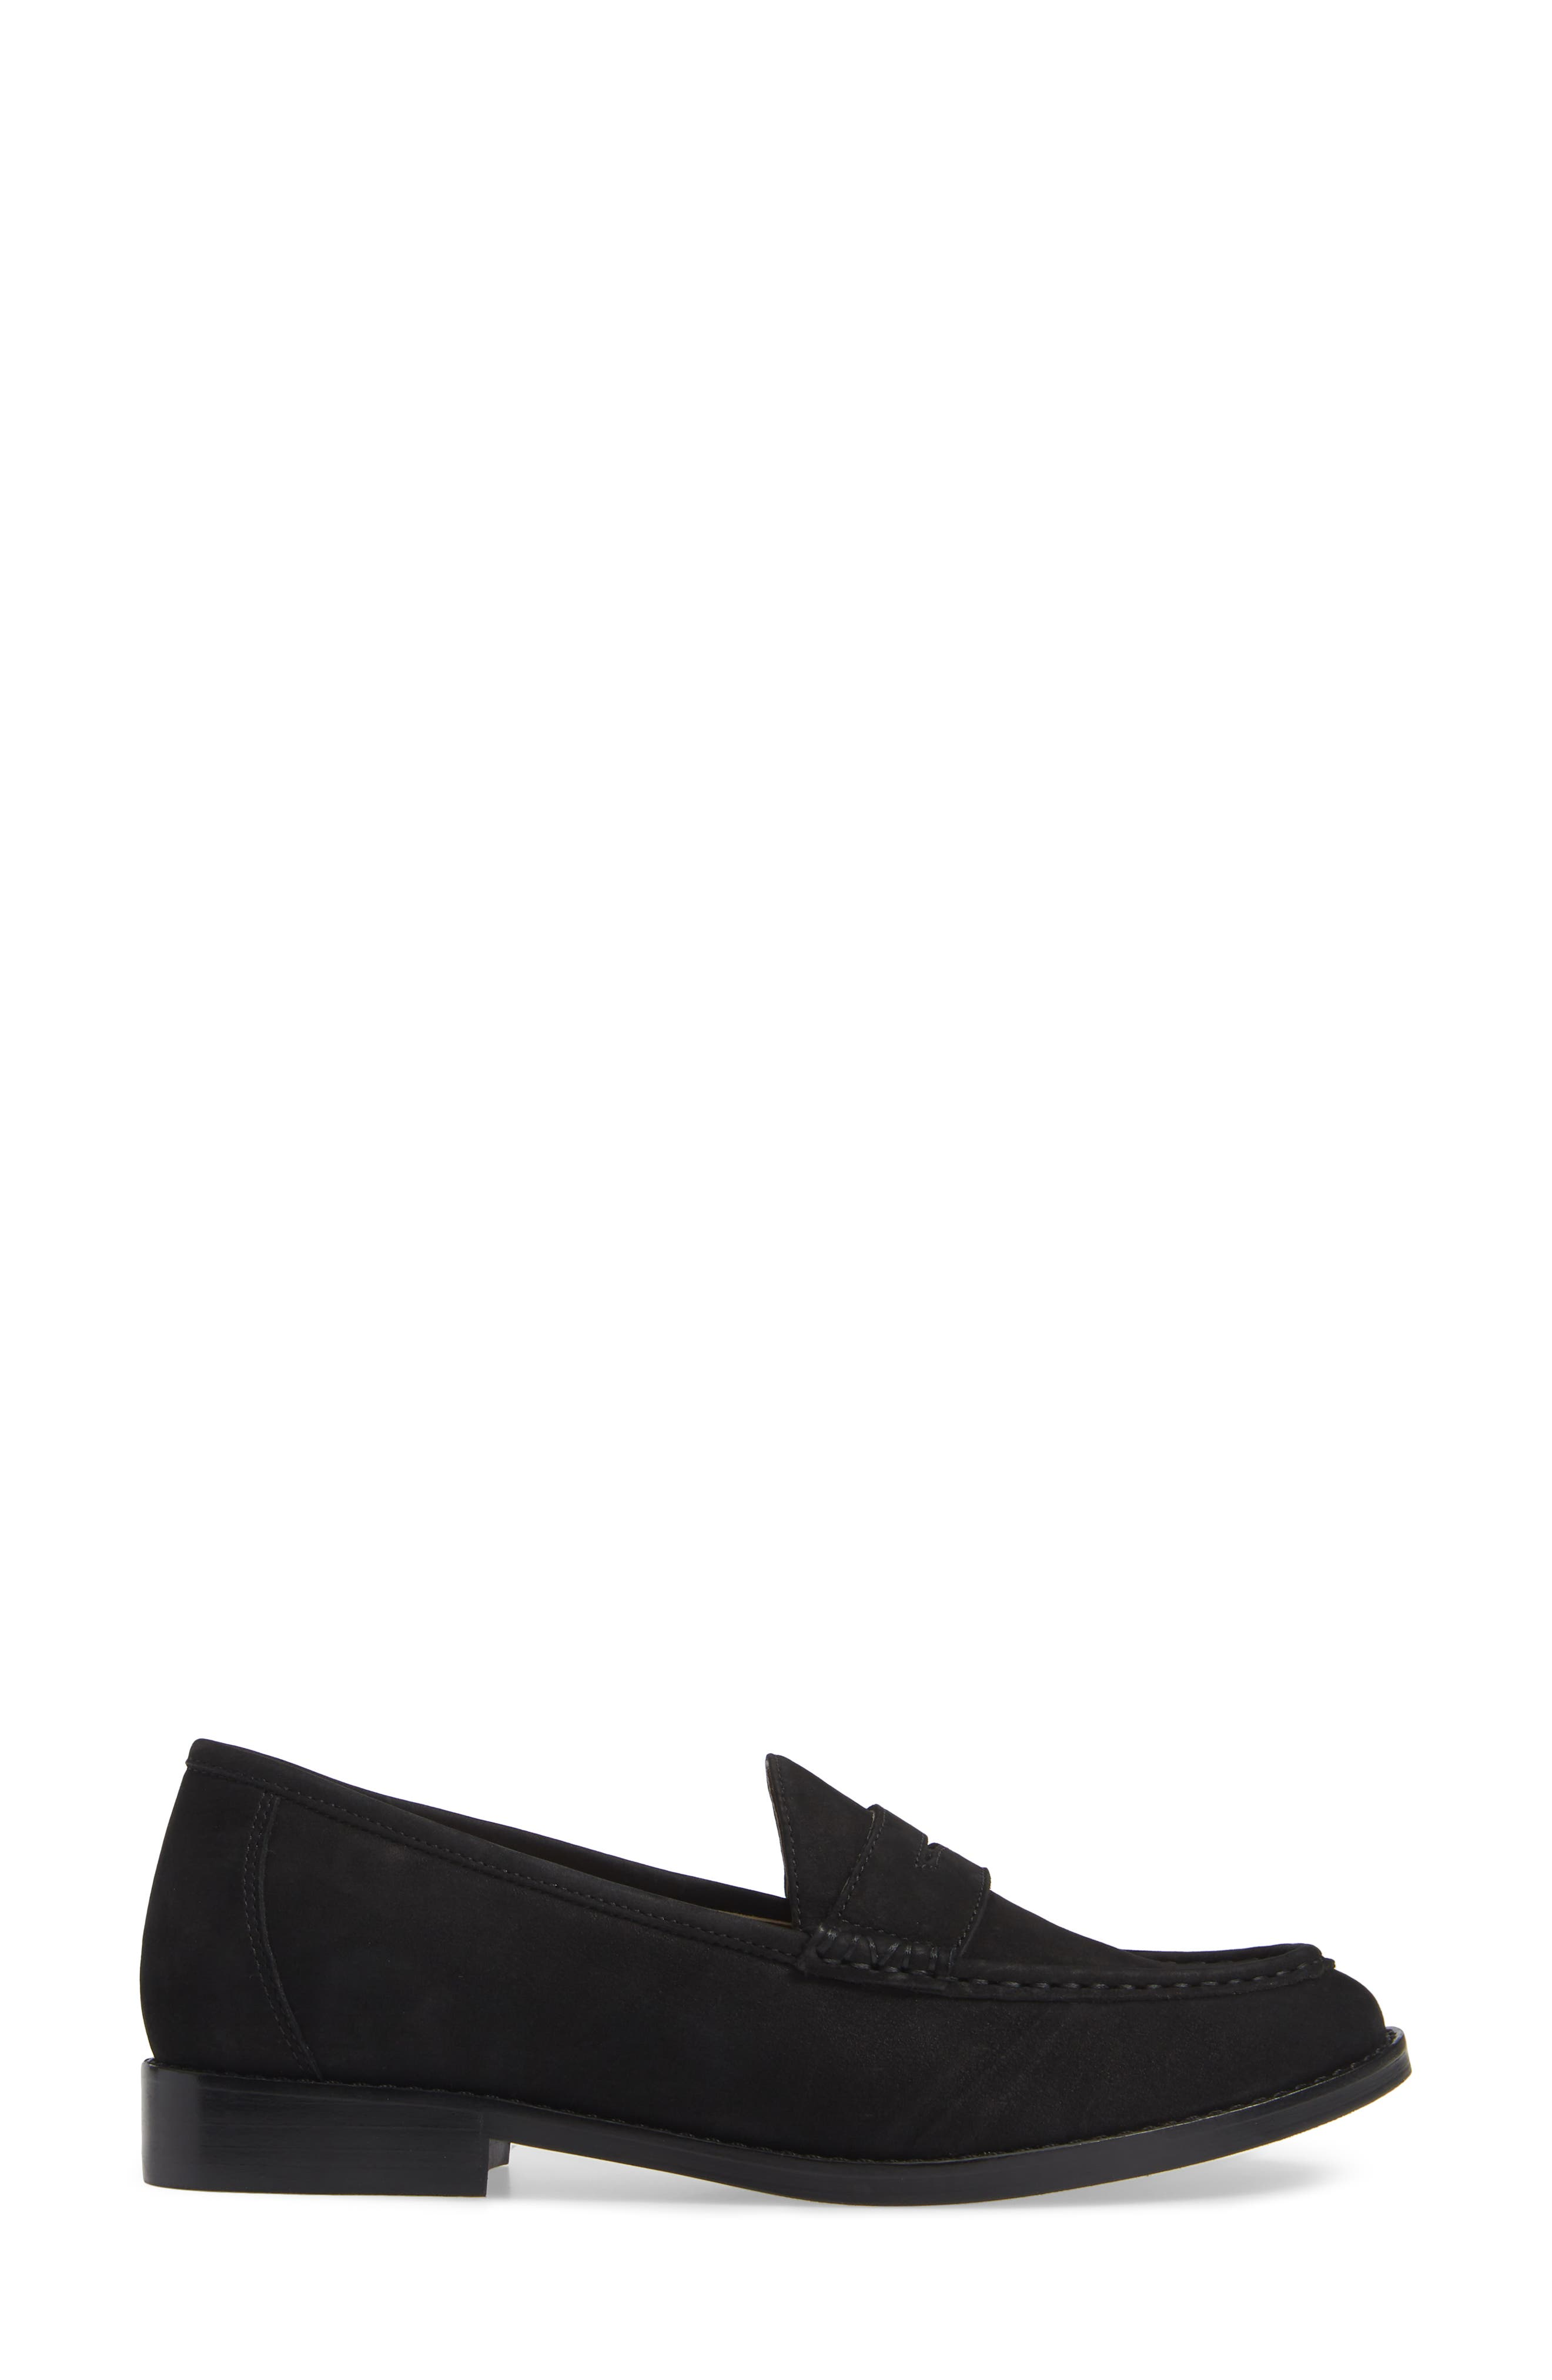 VIONIC, Waverly Loafer, Alternate thumbnail 3, color, BLACK LEATHER